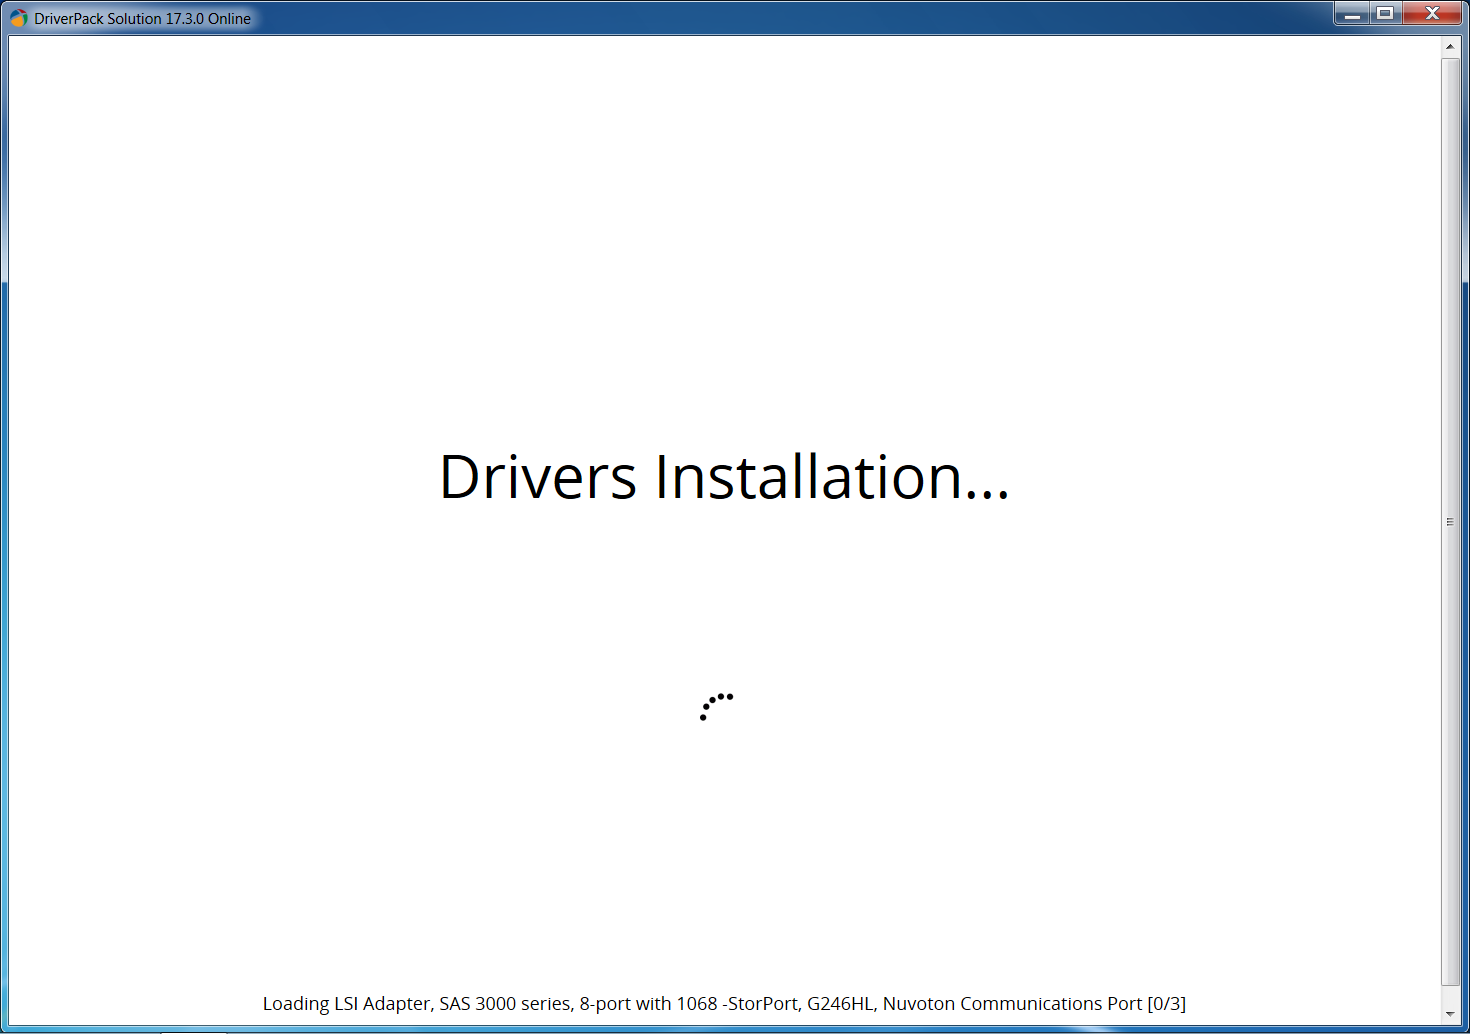 DriverPack Solution Full v17.7.33.2 ESPAÑOL PC Descargar 4